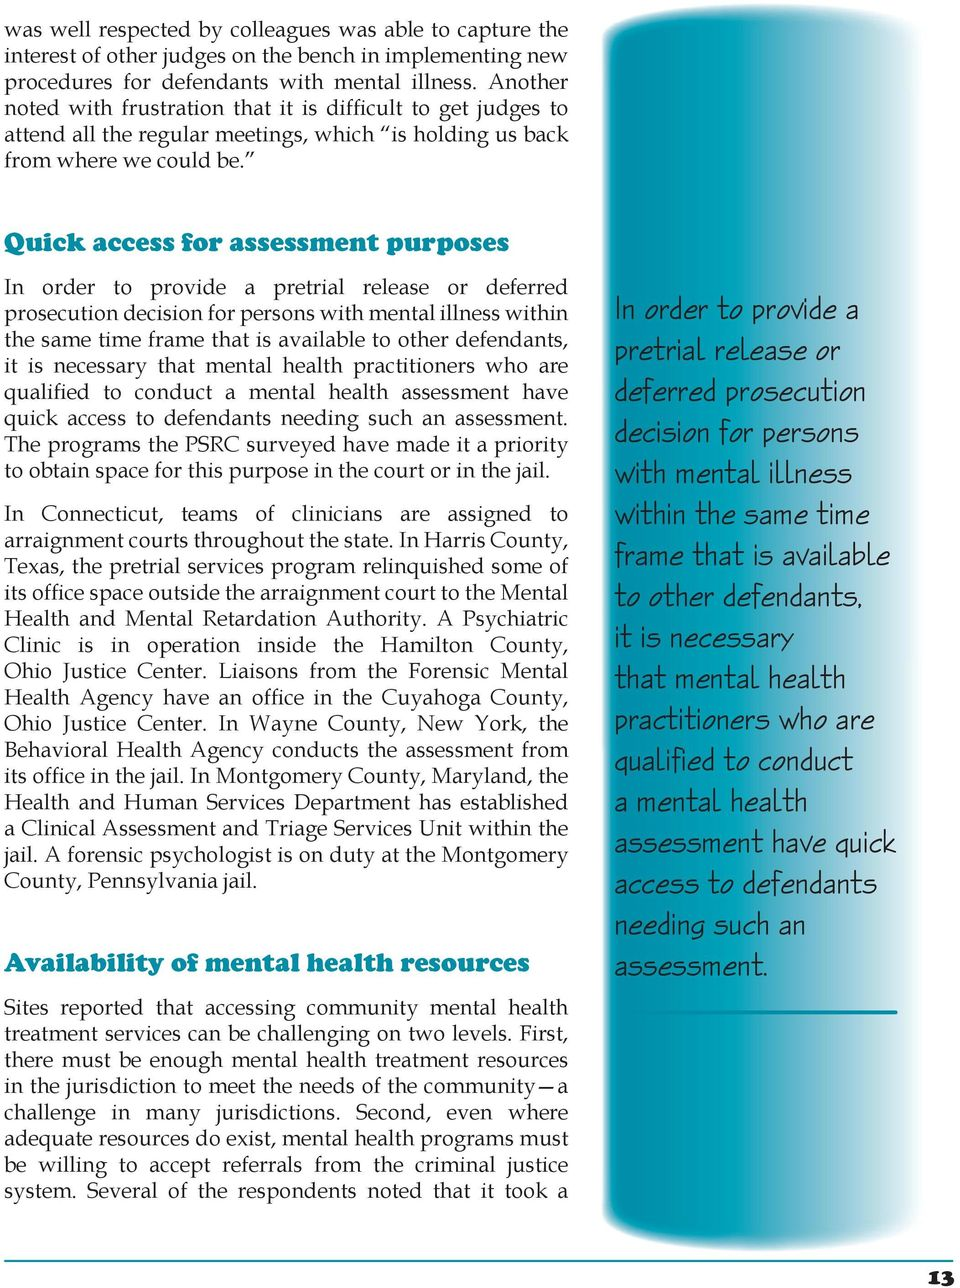 Quick access for assessment purposes In order to provide a pretrial release or deferred prosecution decision for persons with mental illness within the same time frame that is available to other